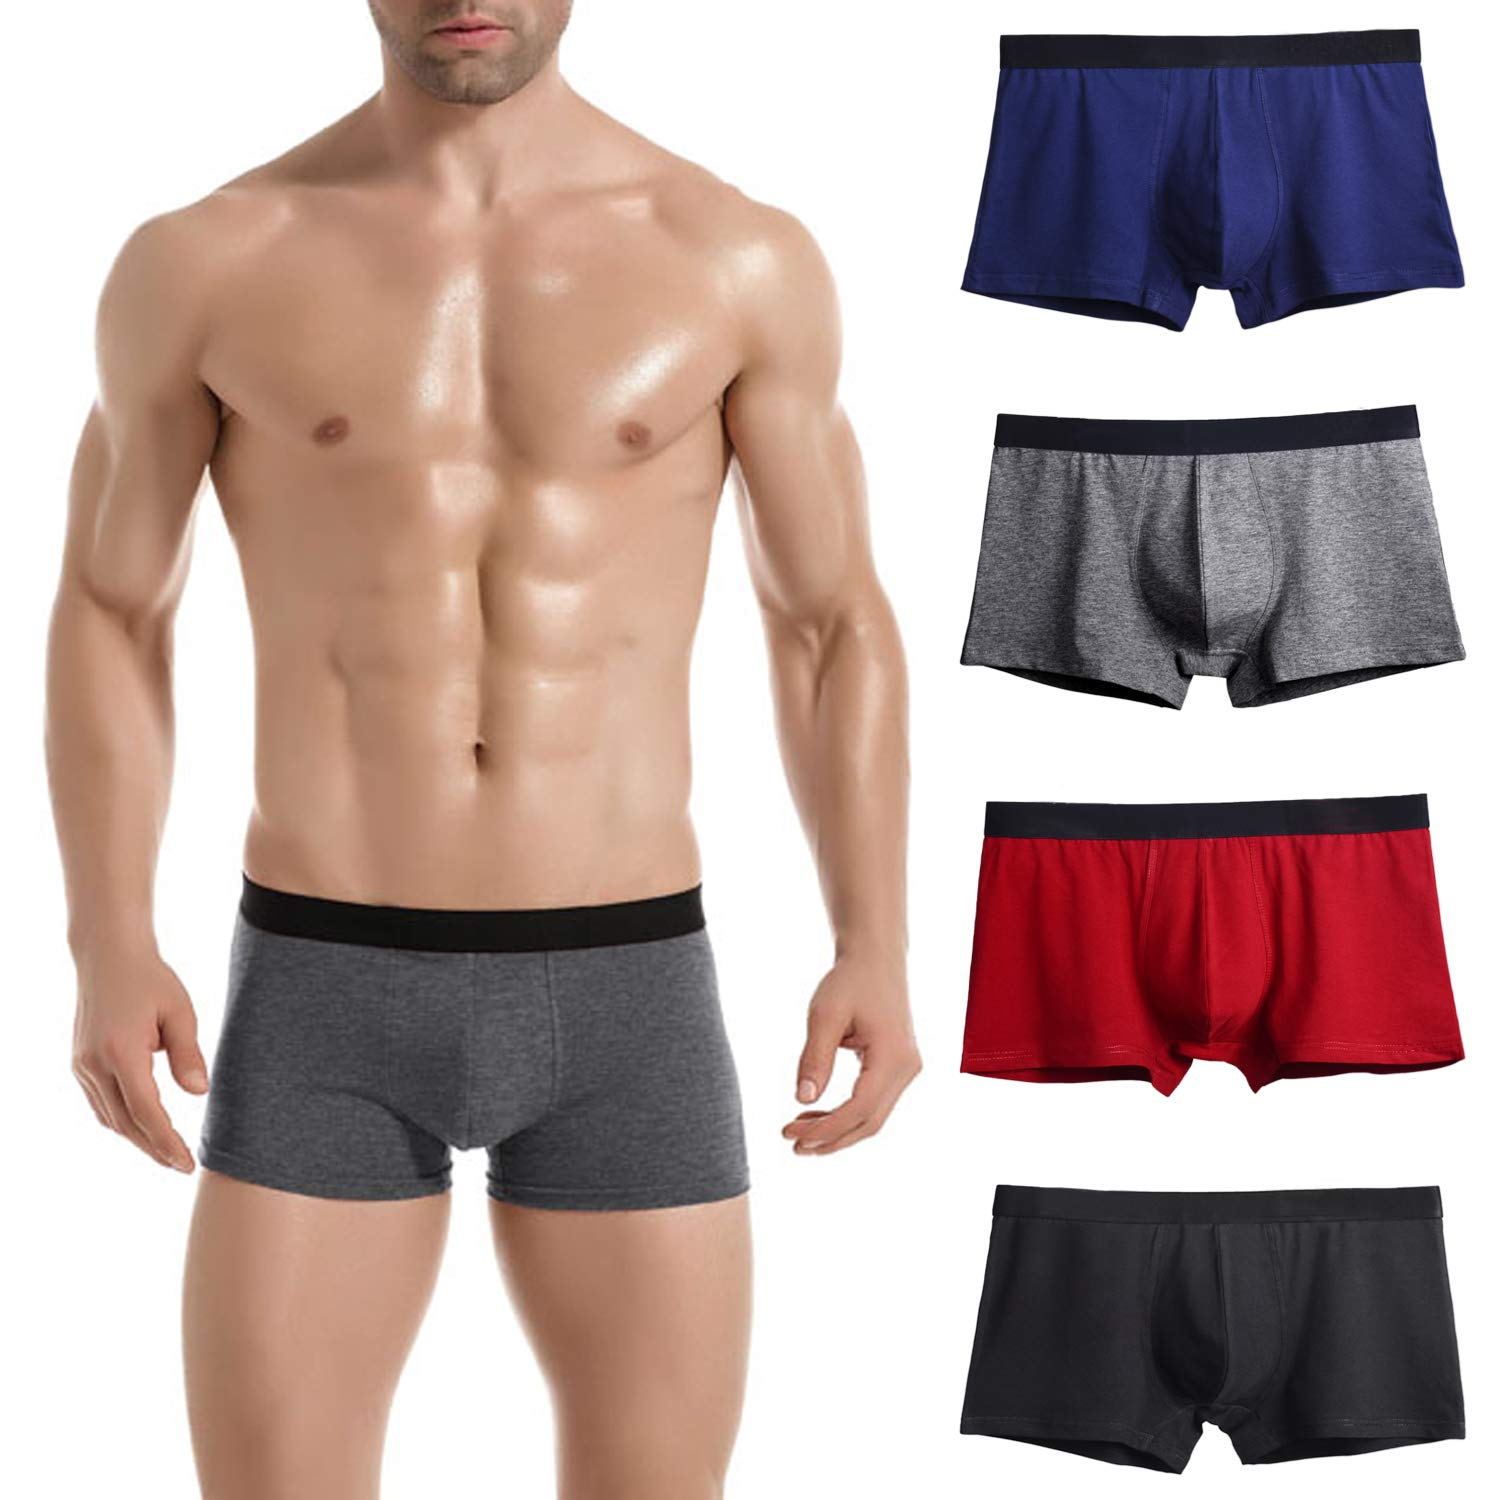 263cb1561e11a Customized for you after Great quantity of body statistic analysising in  boxer briefs.Just follow the size map and get yourself a fitted underwear.